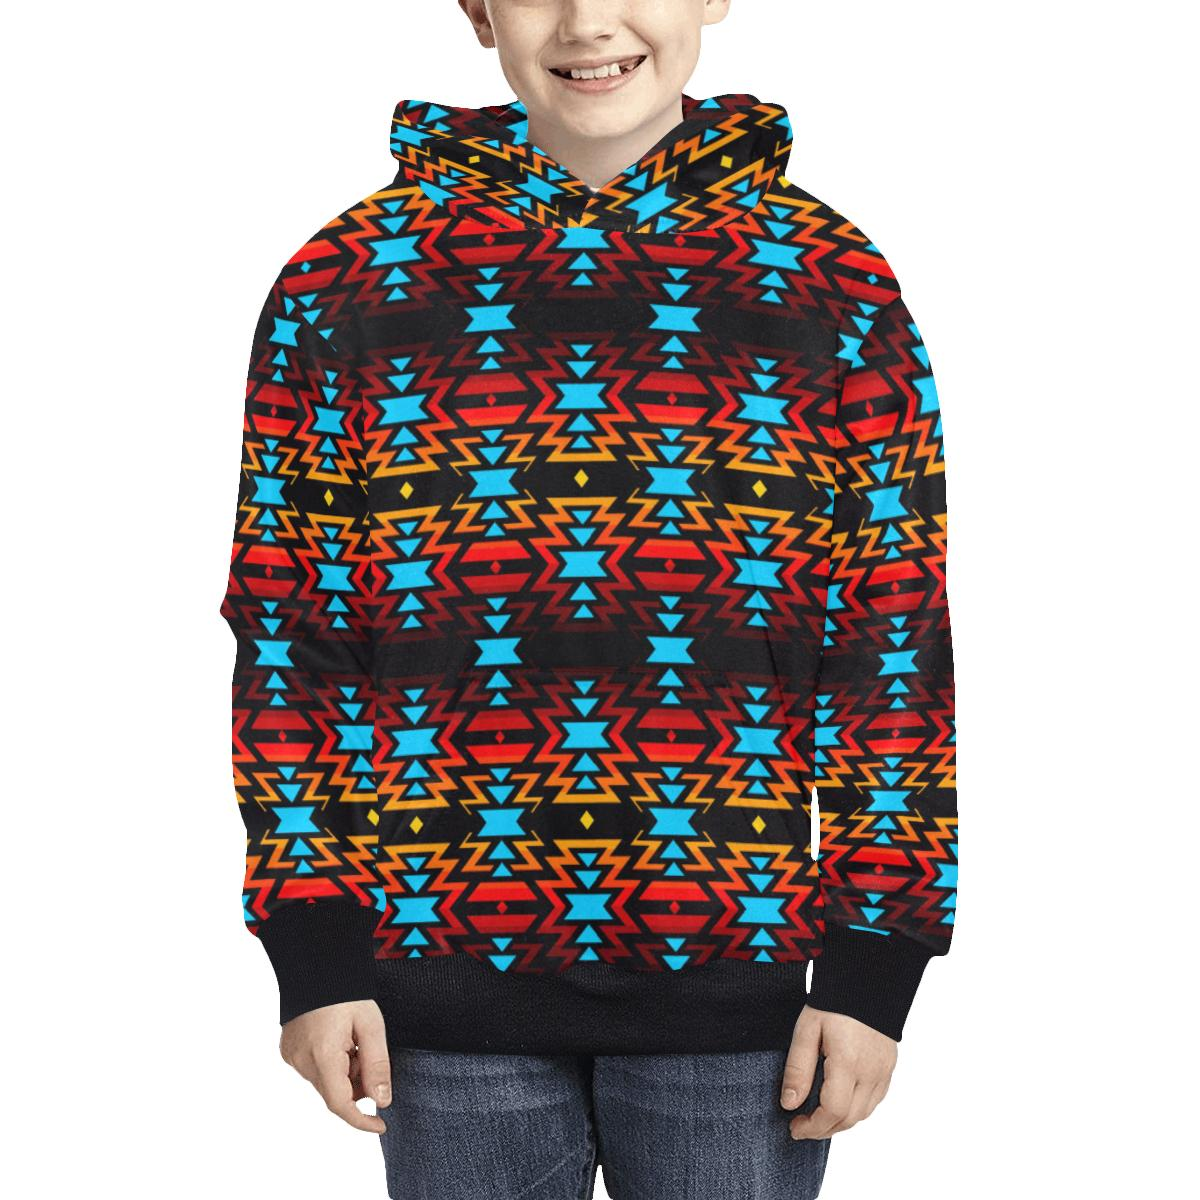 Black Fire and Sky Kids' All Over Print Hoodie (Model H38) Kids' AOP Hoodie (H38) e-joyer